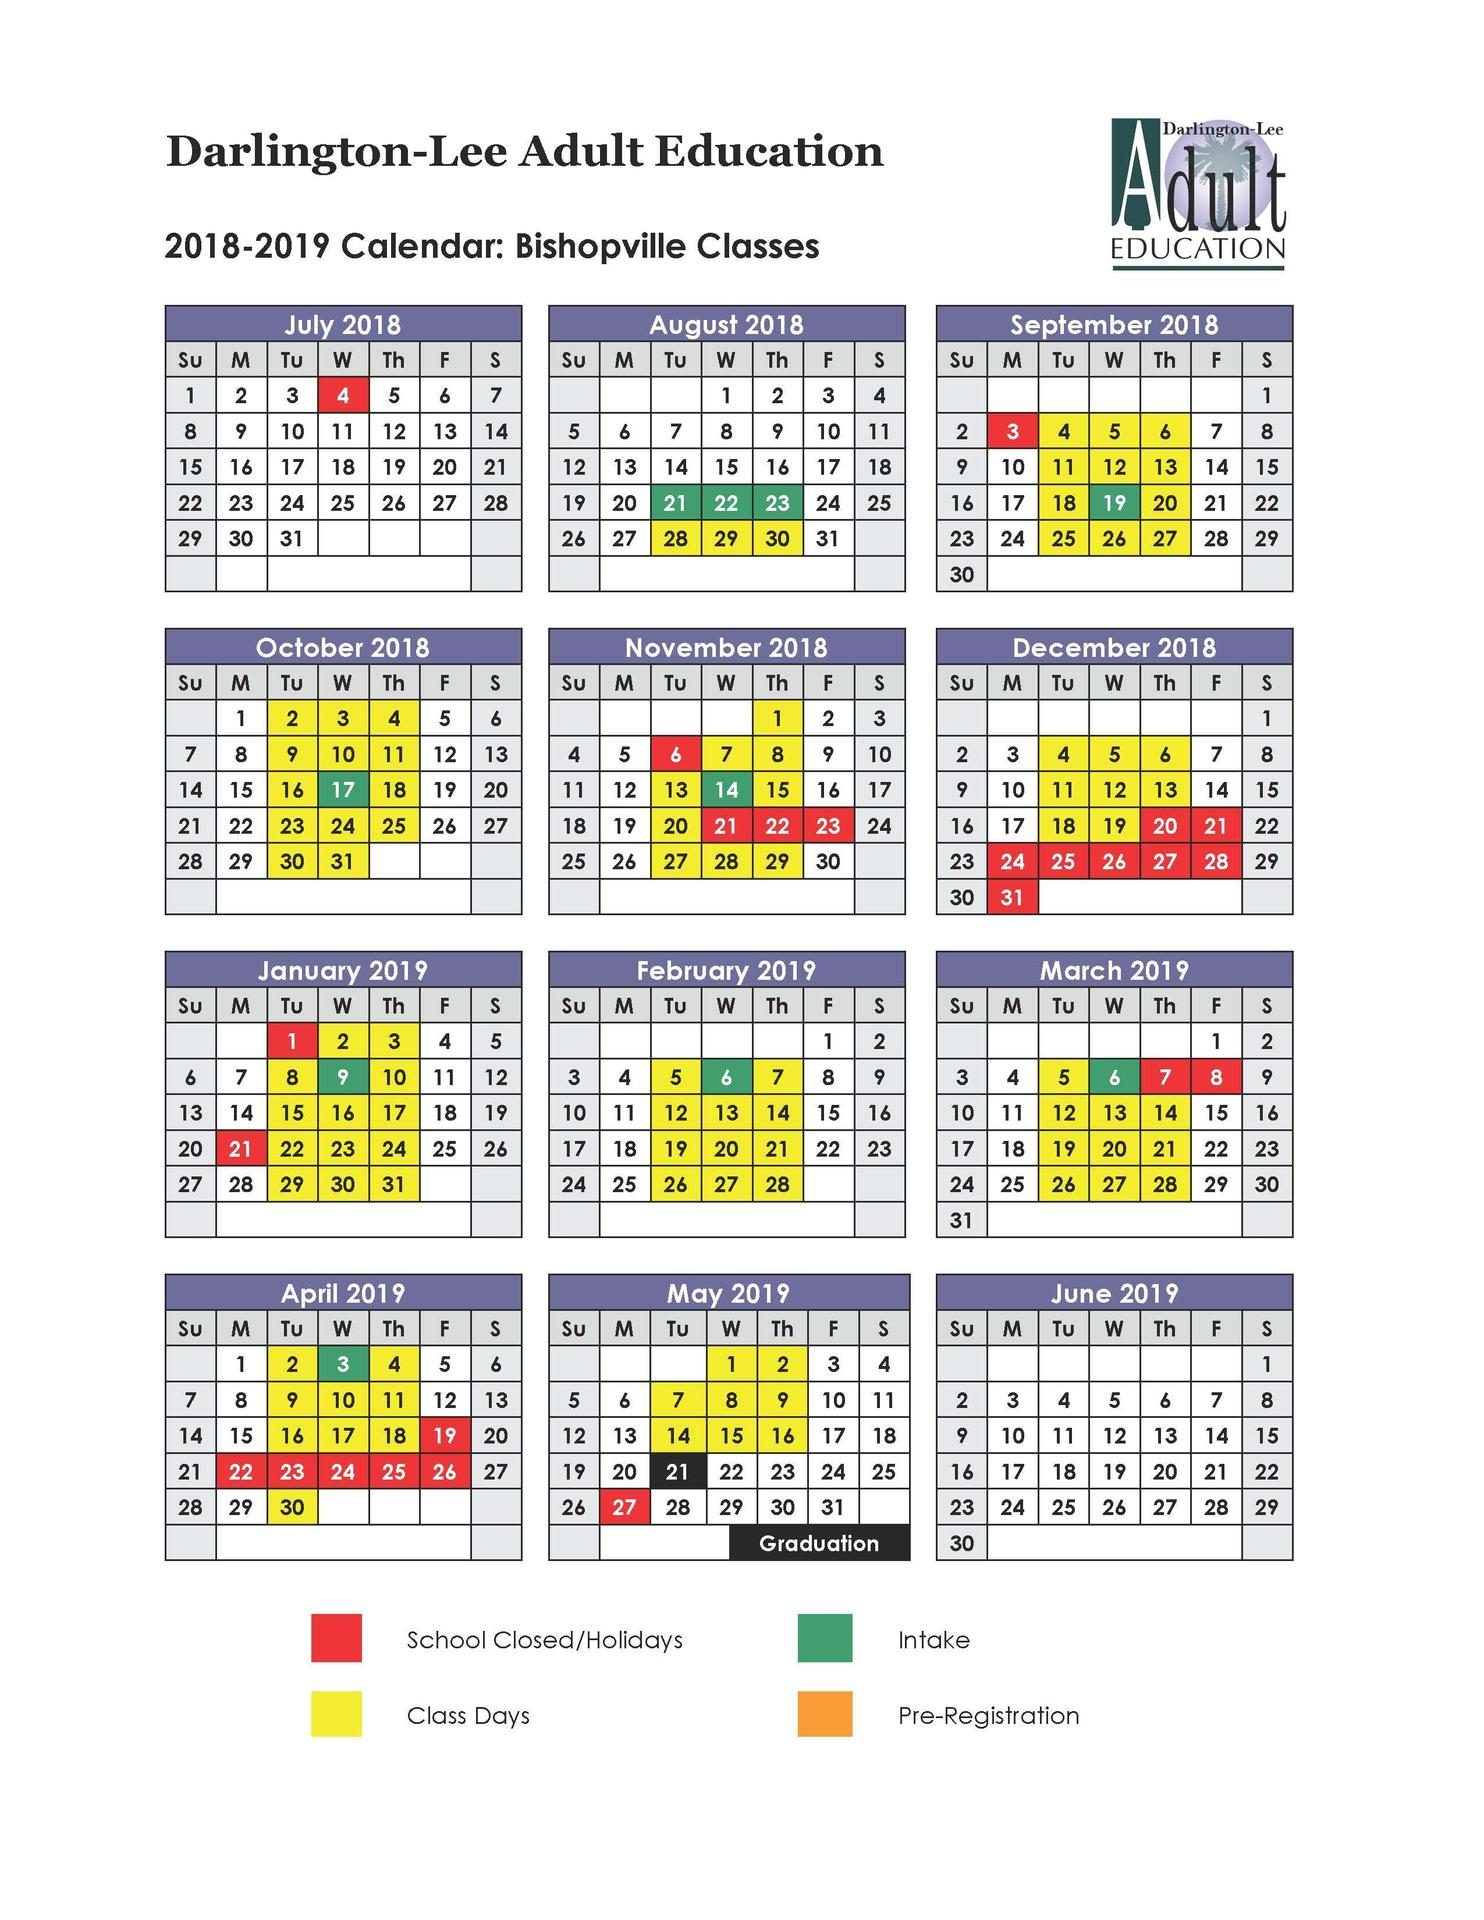 Lee County School Calendar 2019 16 Lee County Adult Education Schedule 2018 2019 – Adult Education